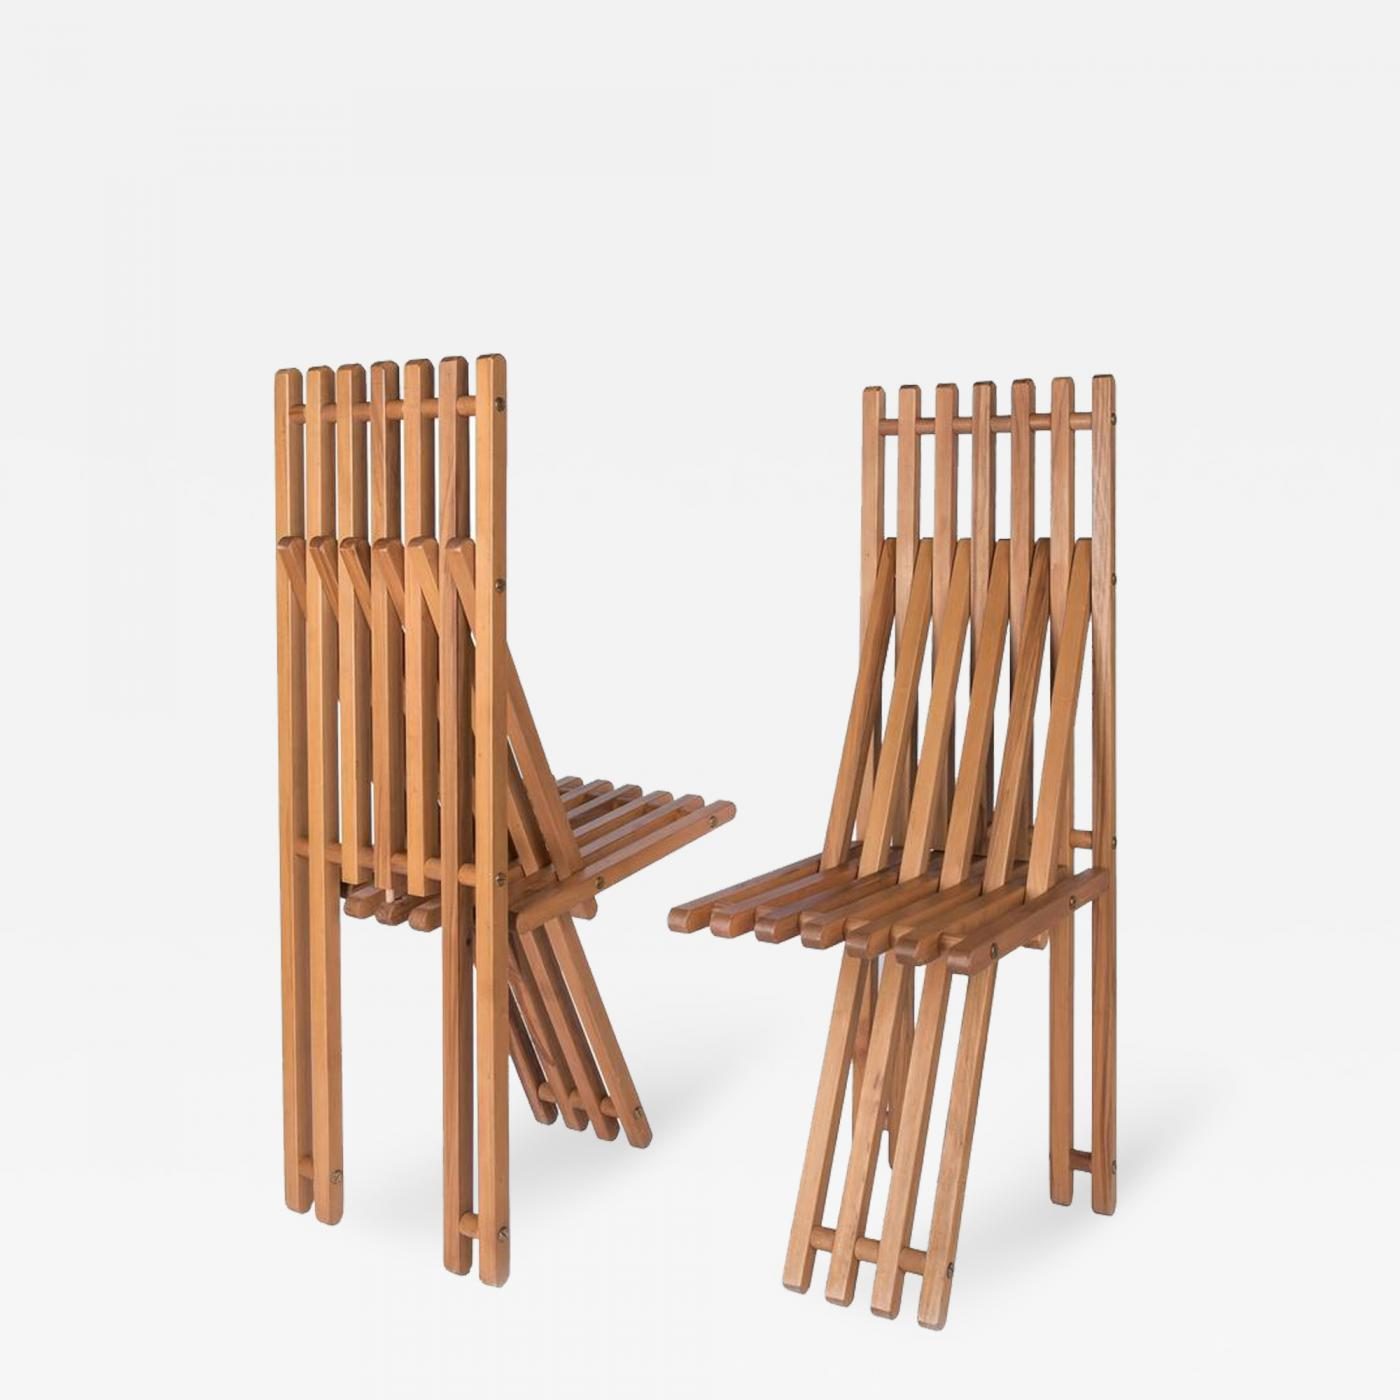 Folding Chairs by Capitini & Palmoni